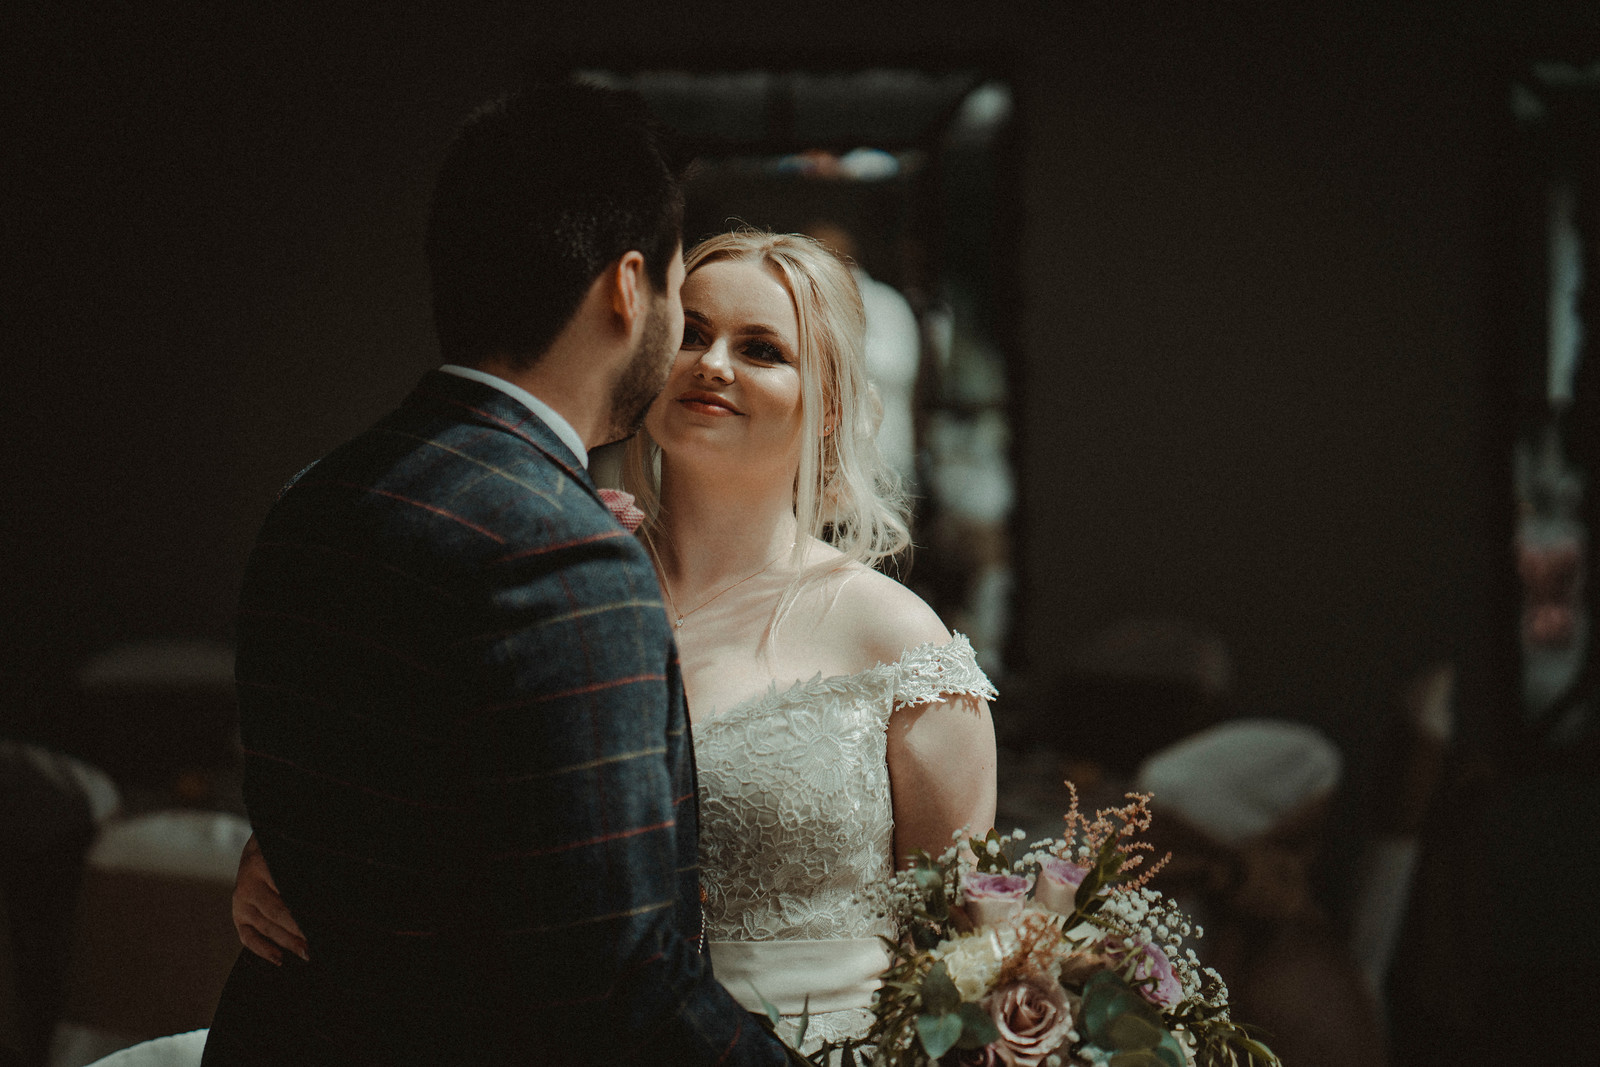 Bride smiles as she looks into the grooms eyes